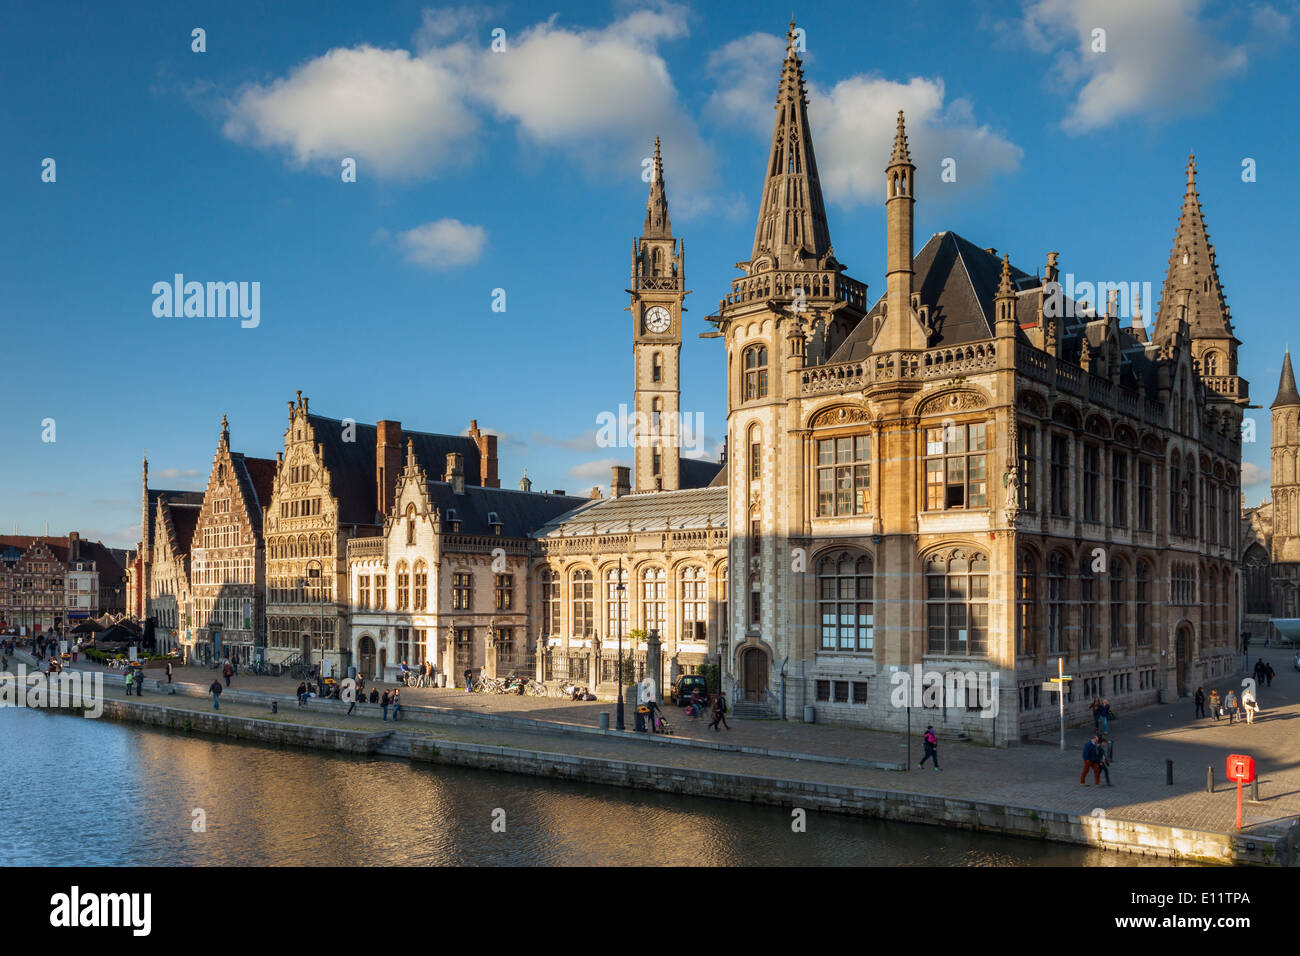 Ghent old town, Belgium. - Stock Image